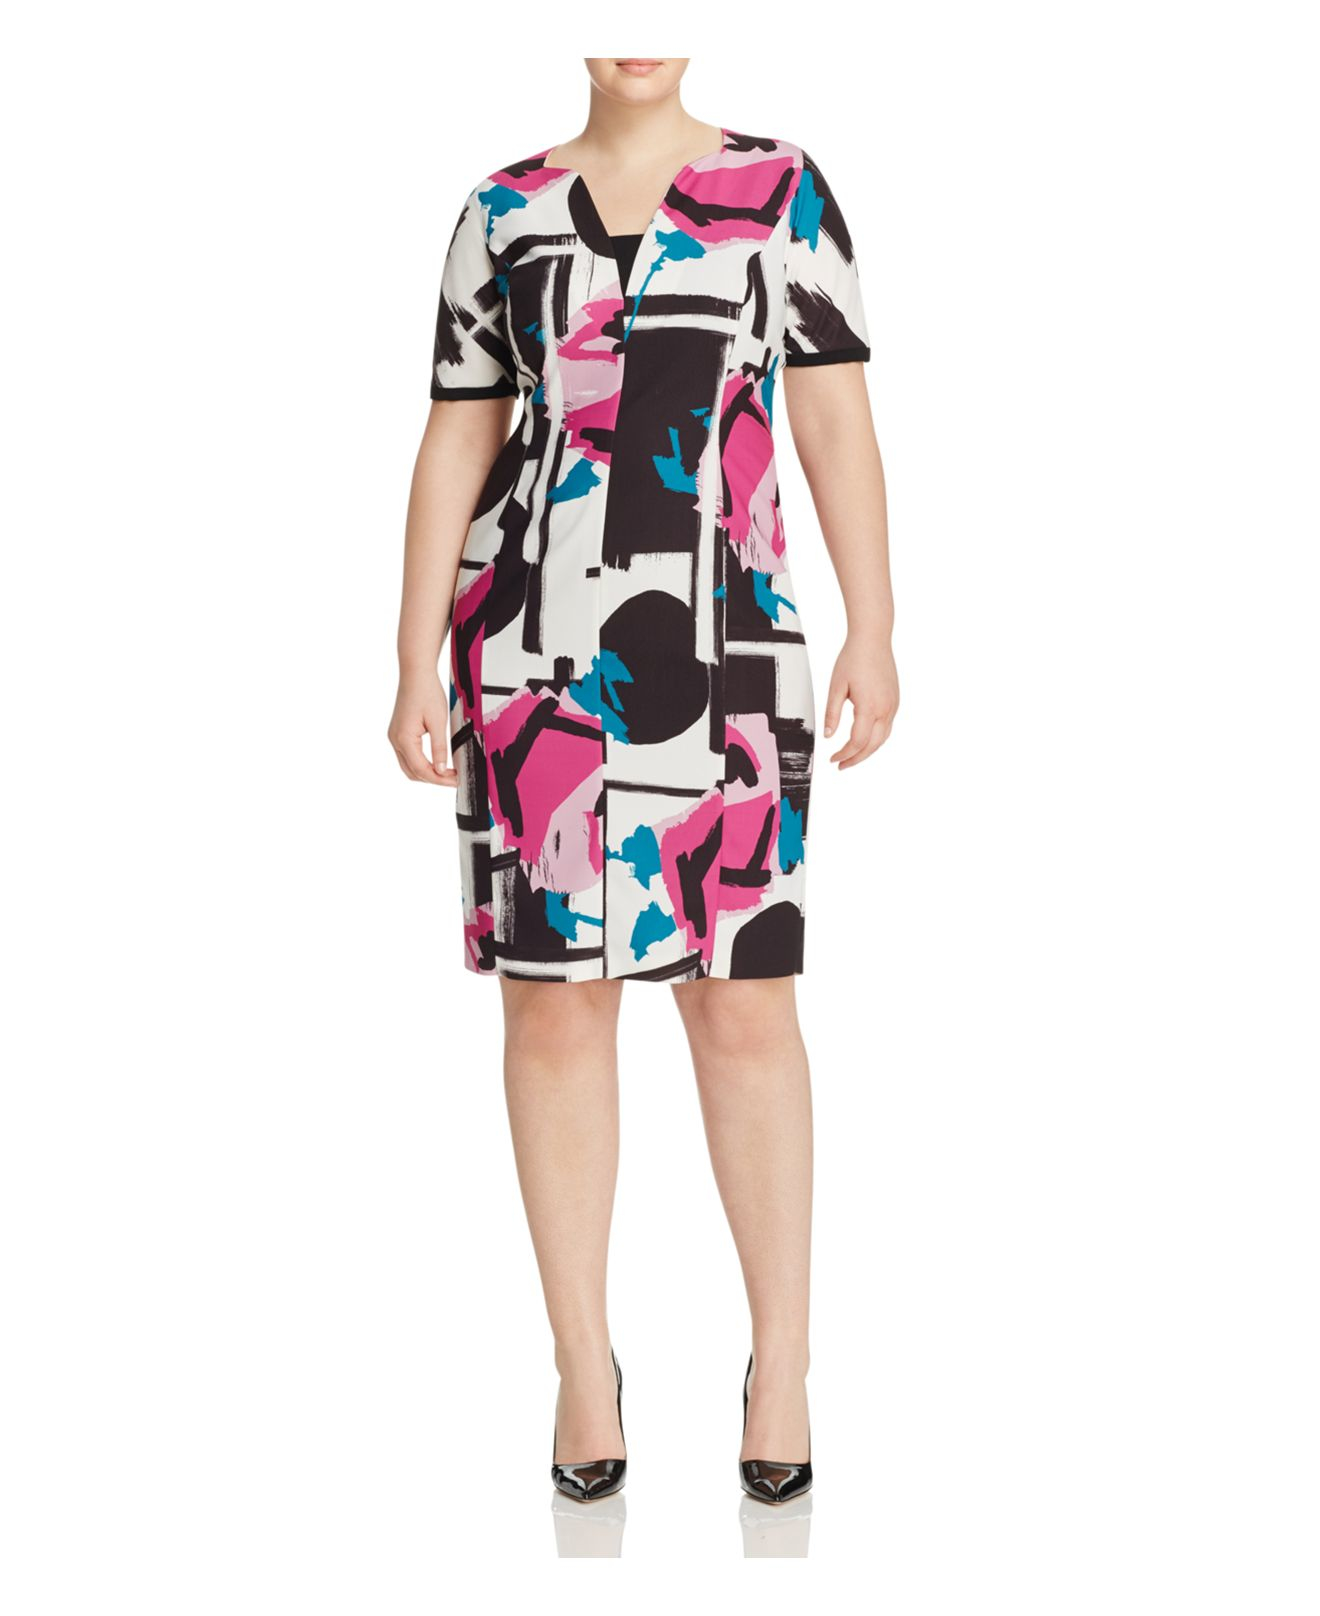 Lyst marina rinaldi dolce printed sheath dress for Marina rinaldi wedding dresses